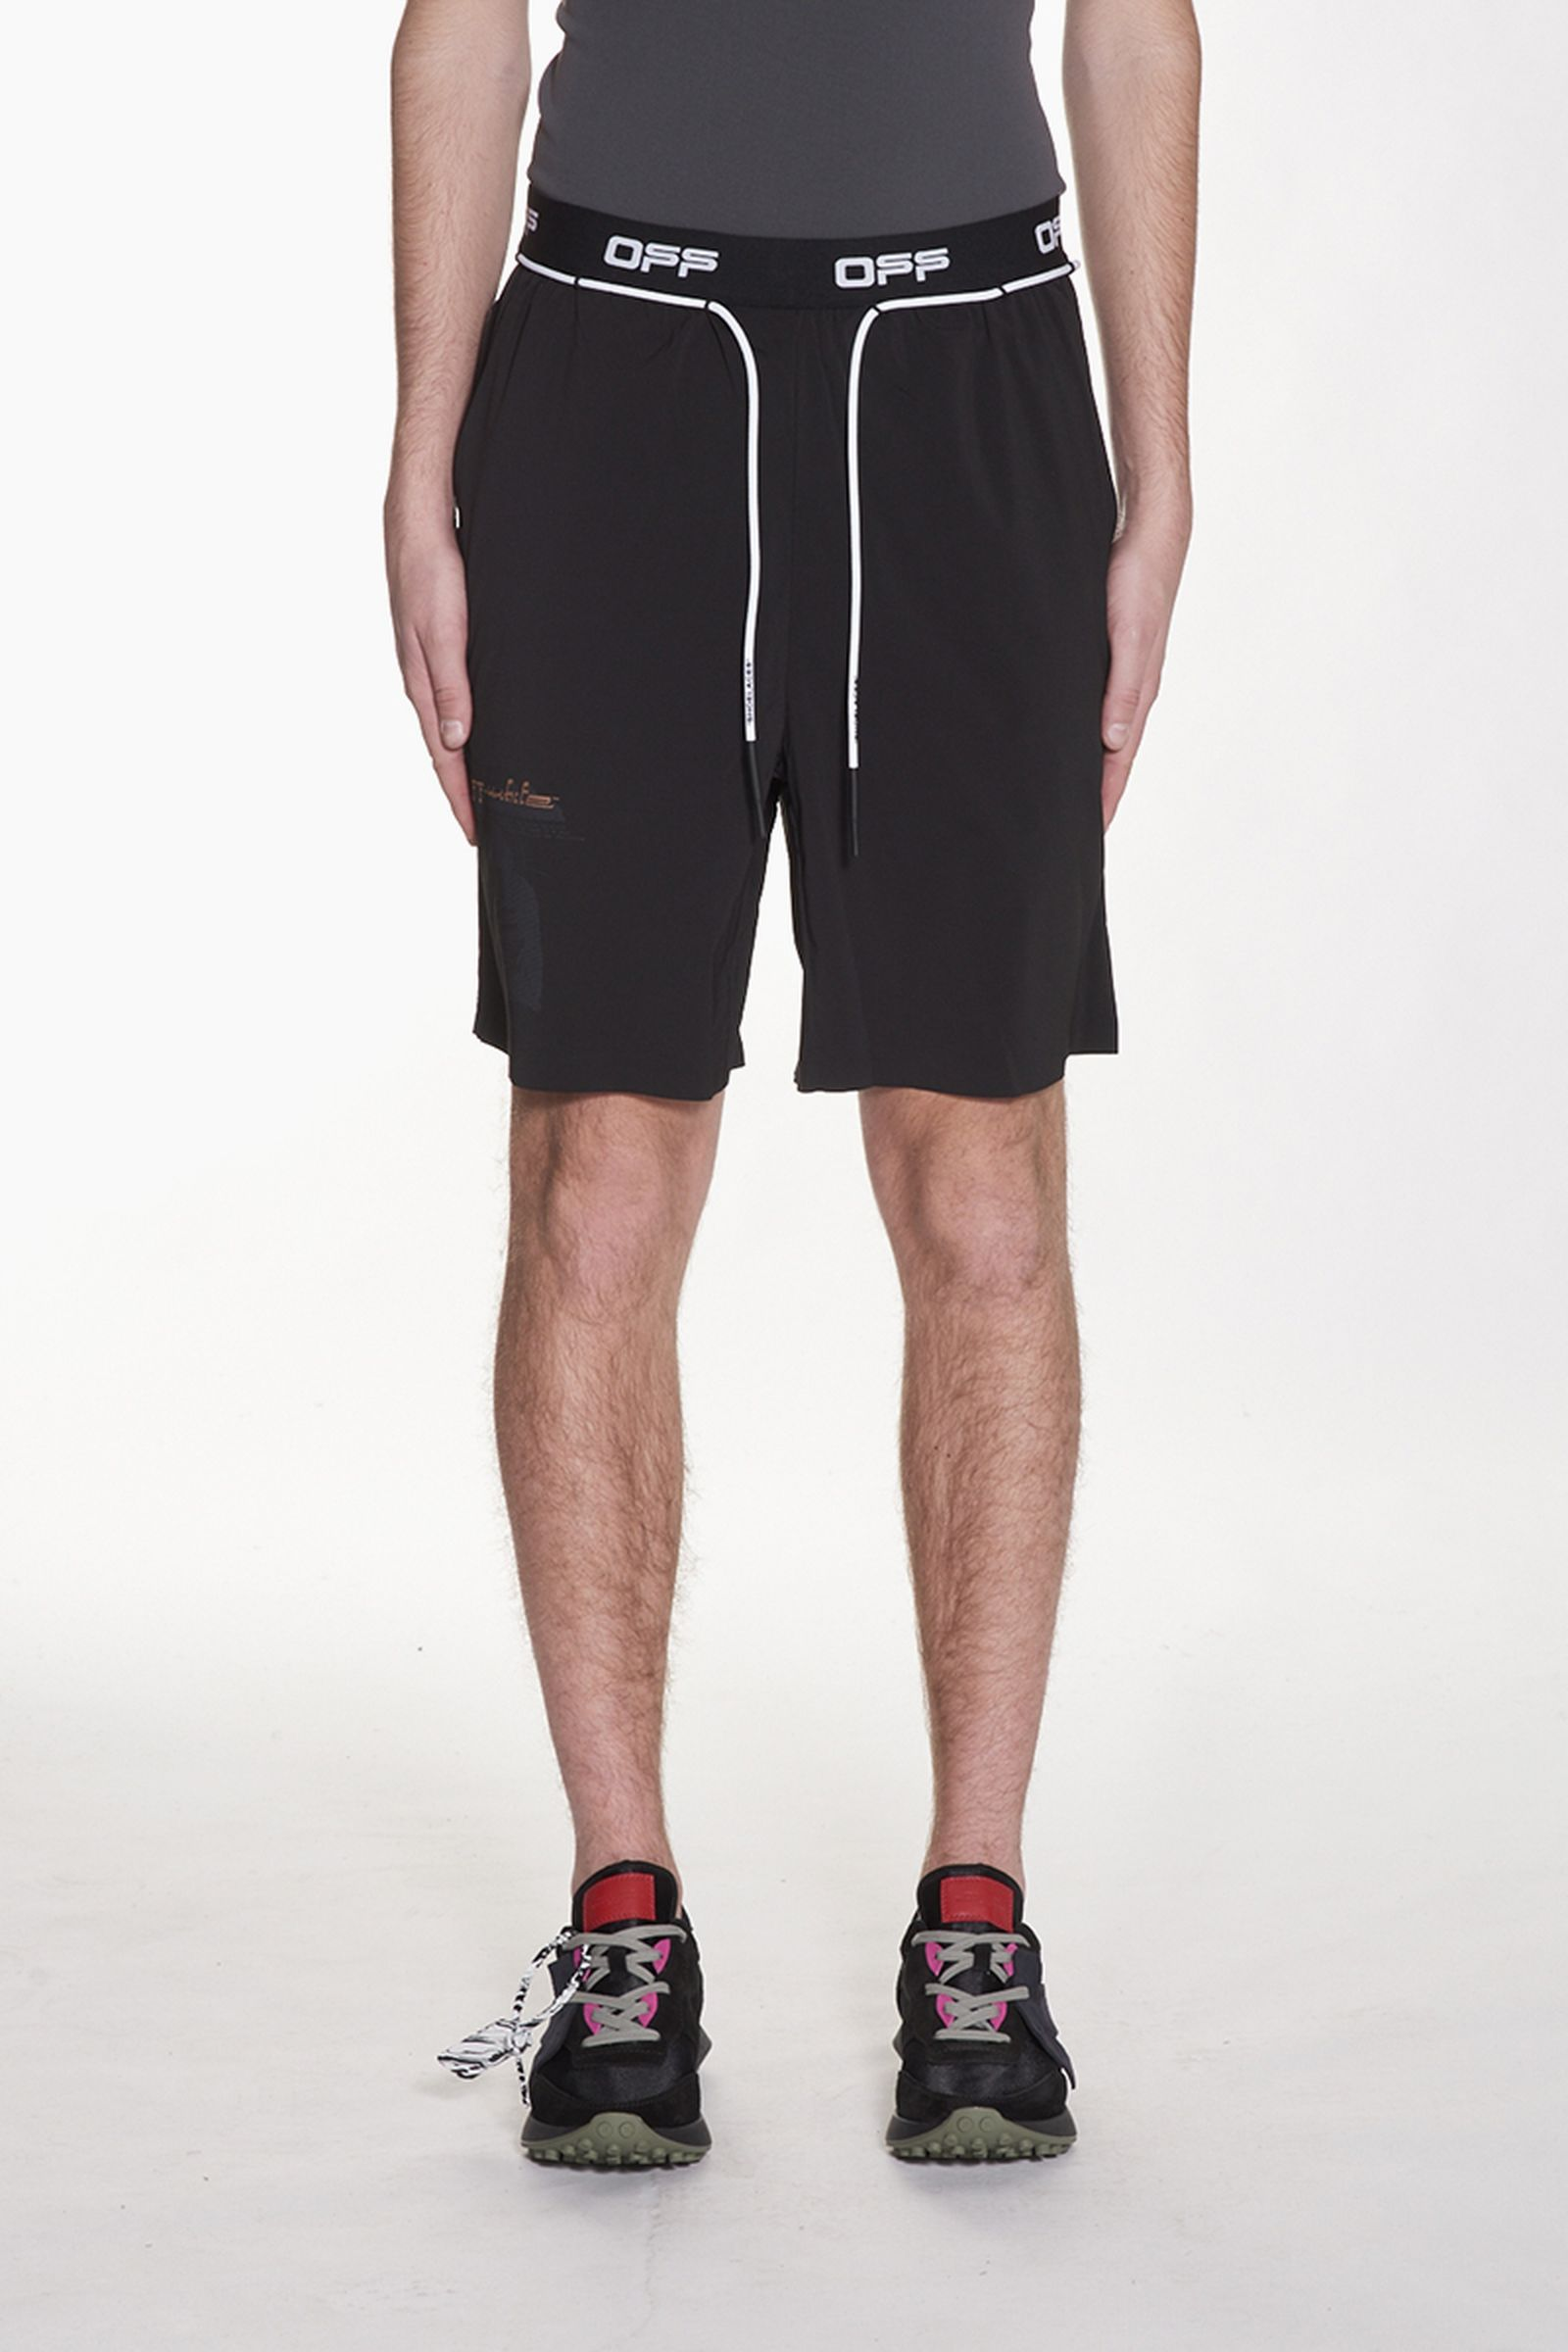 4off-white-activewear-off-active